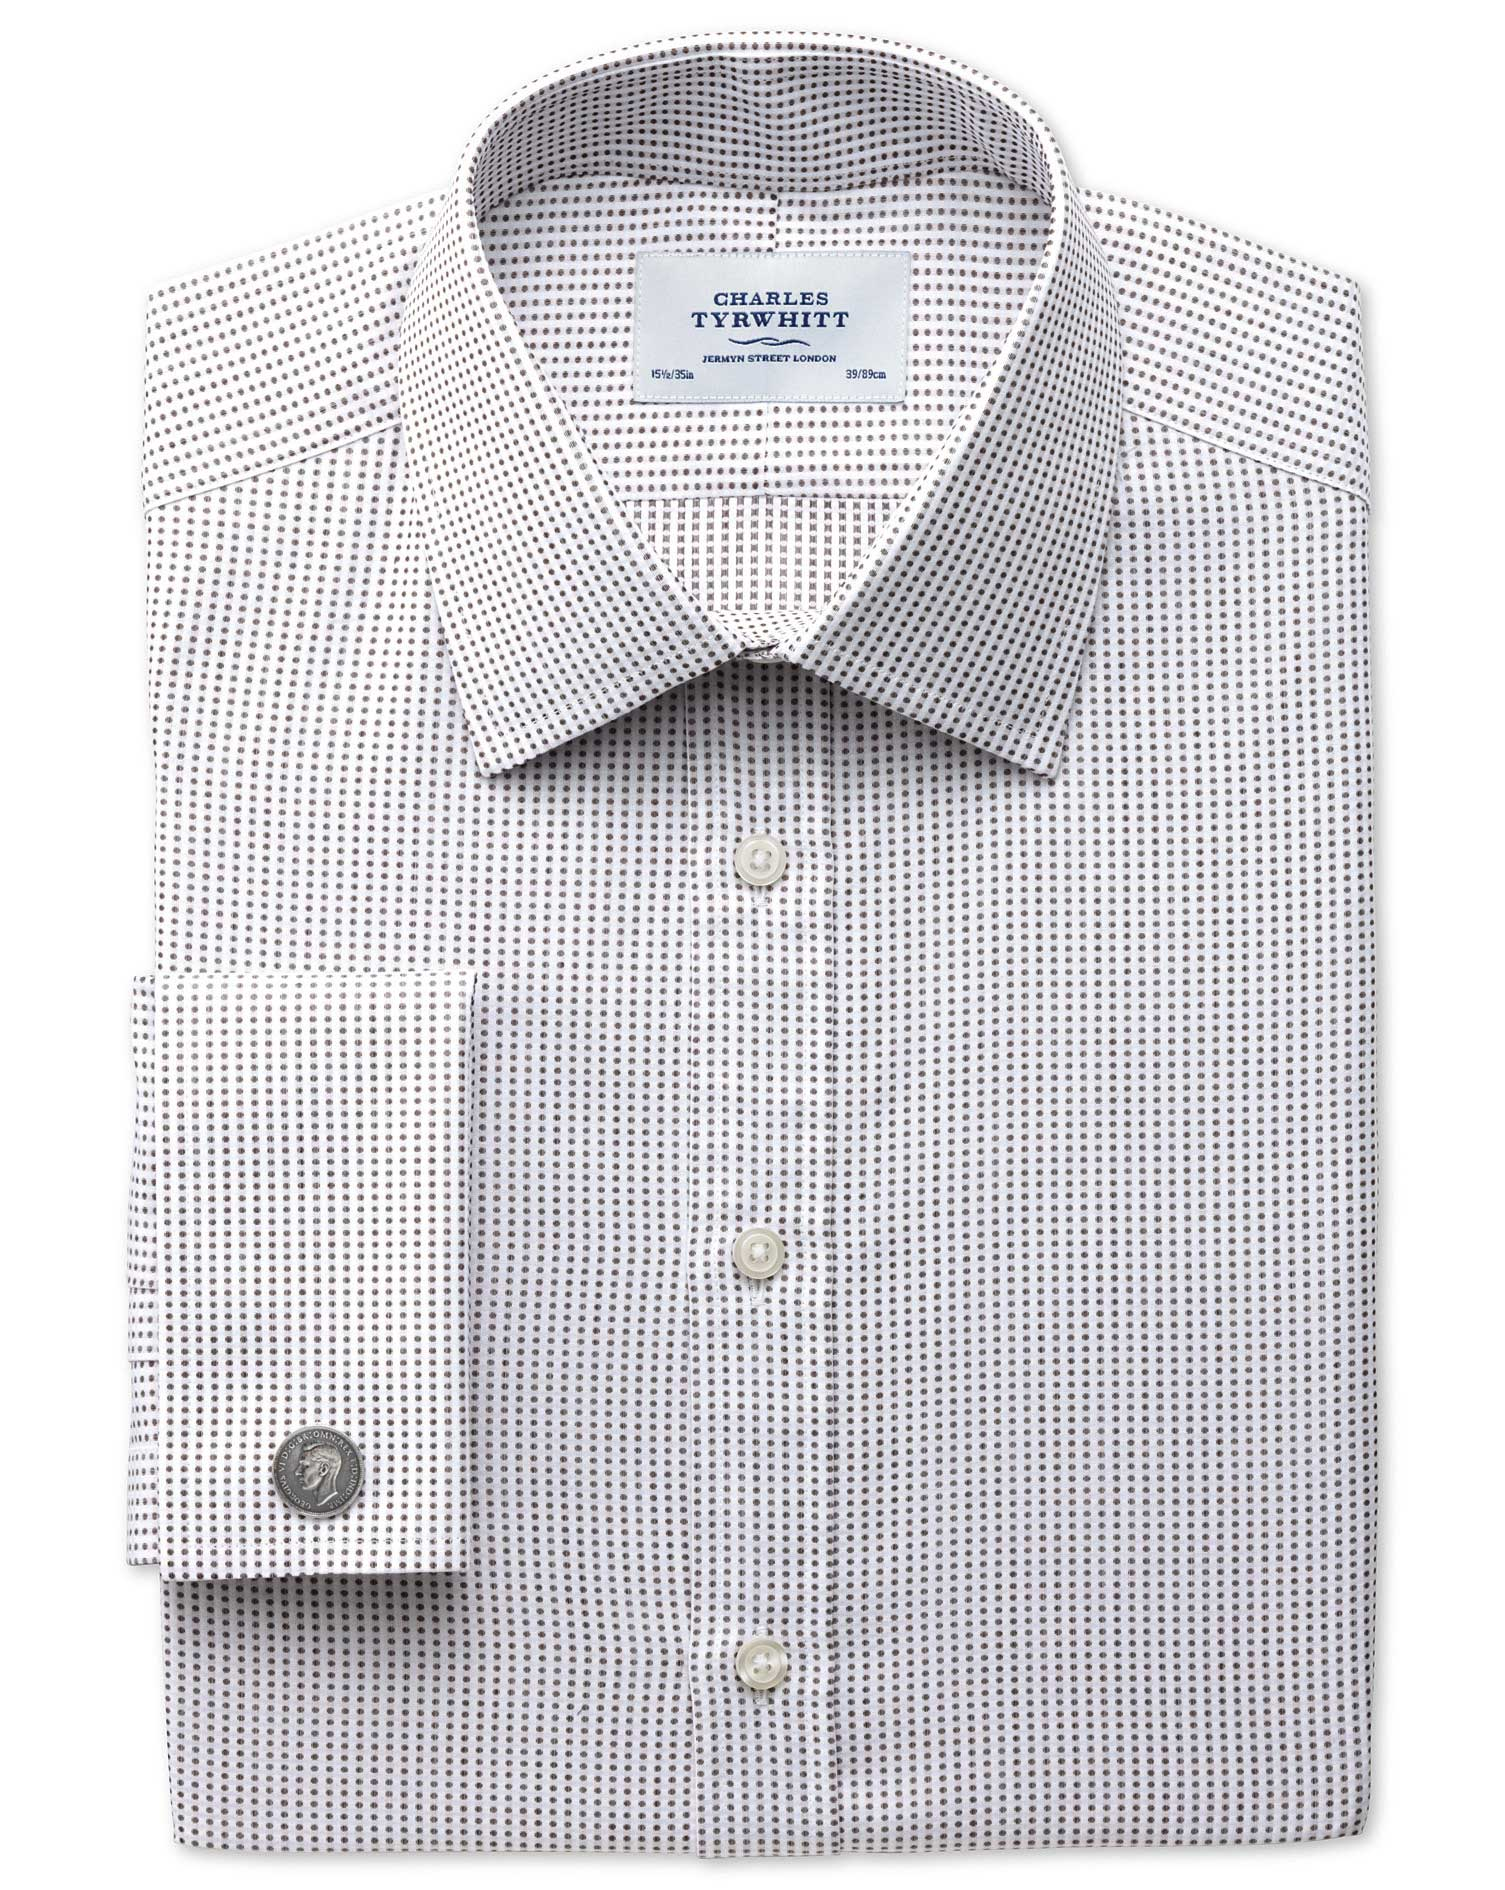 Slim Fit Pima Cotton Double-Faced Brown Formal Shirt Double Cuff Size 16/36 by Charles Tyrwhitt